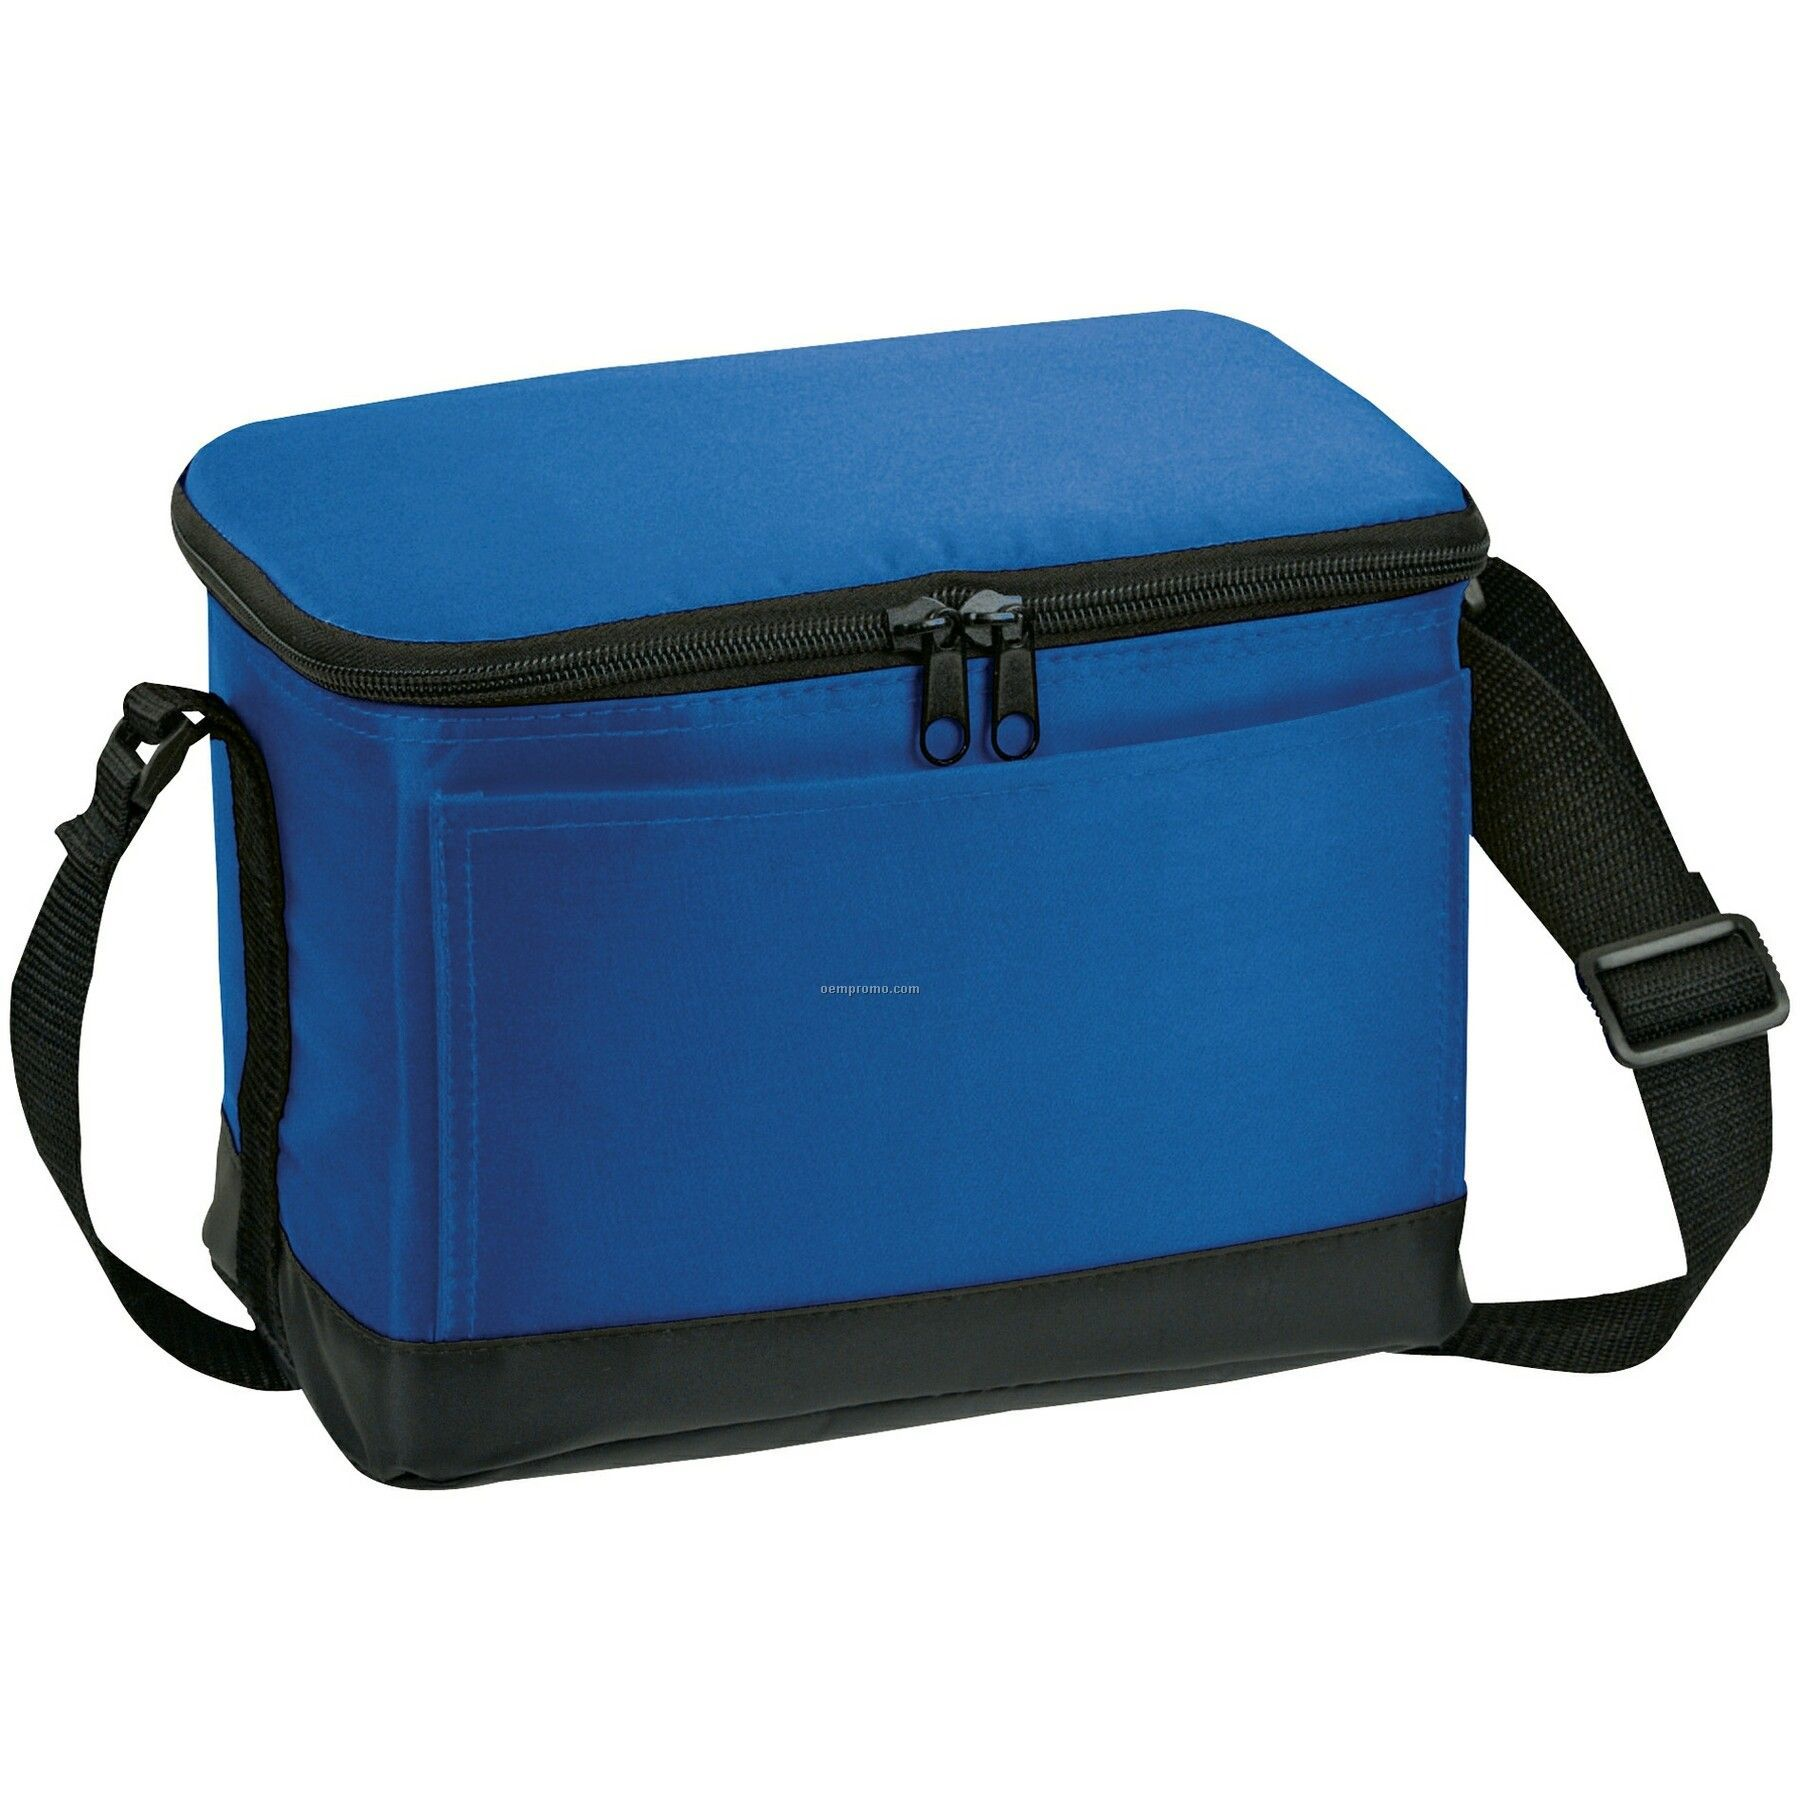 6 Pack Cooler ~ Coolers china wholesale page